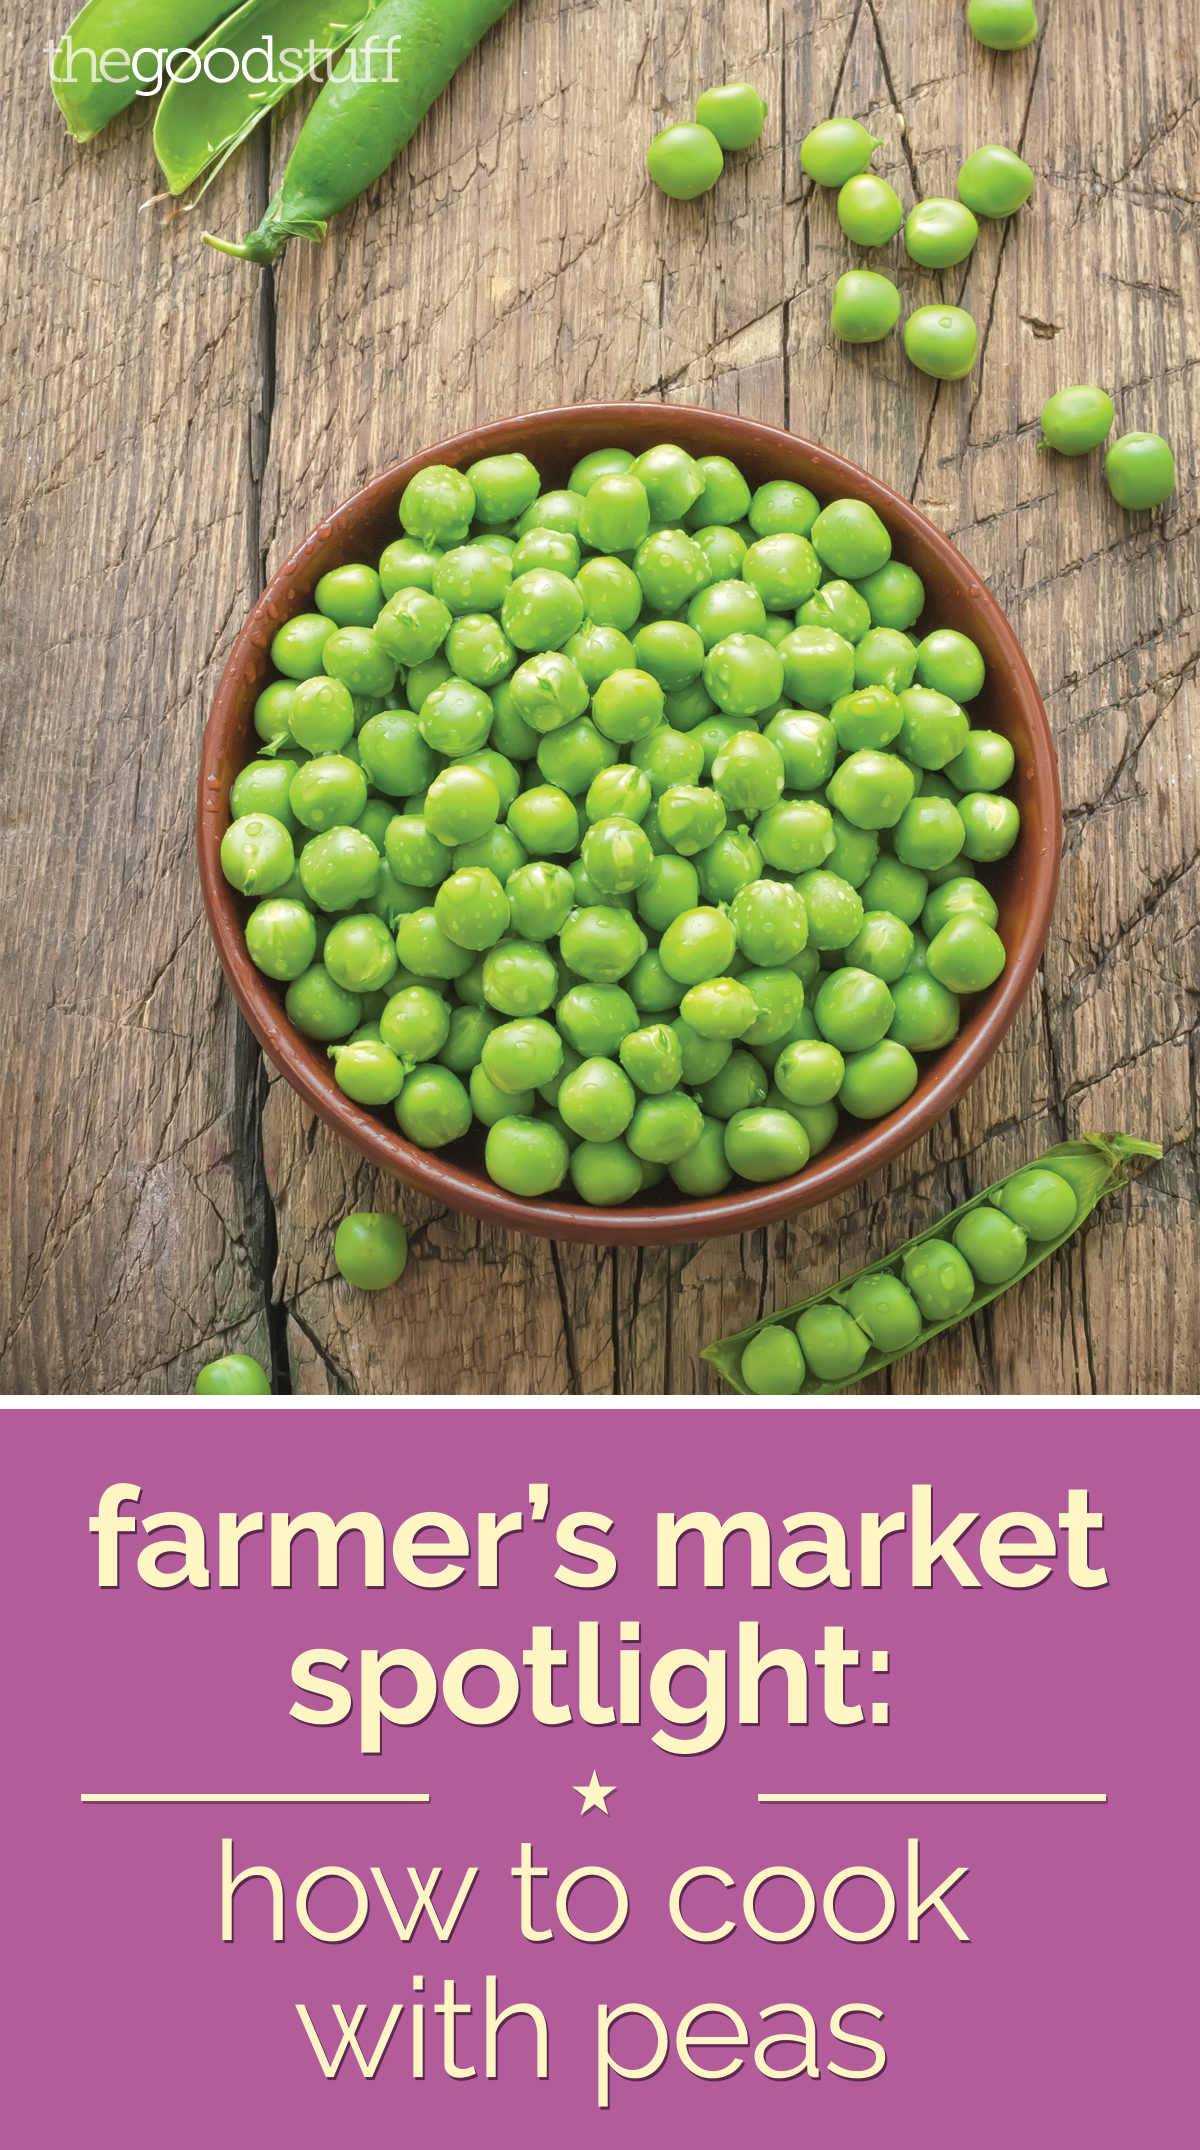 Farmer's Market Spotlight: How to Cook with Peas | thegoodstuff